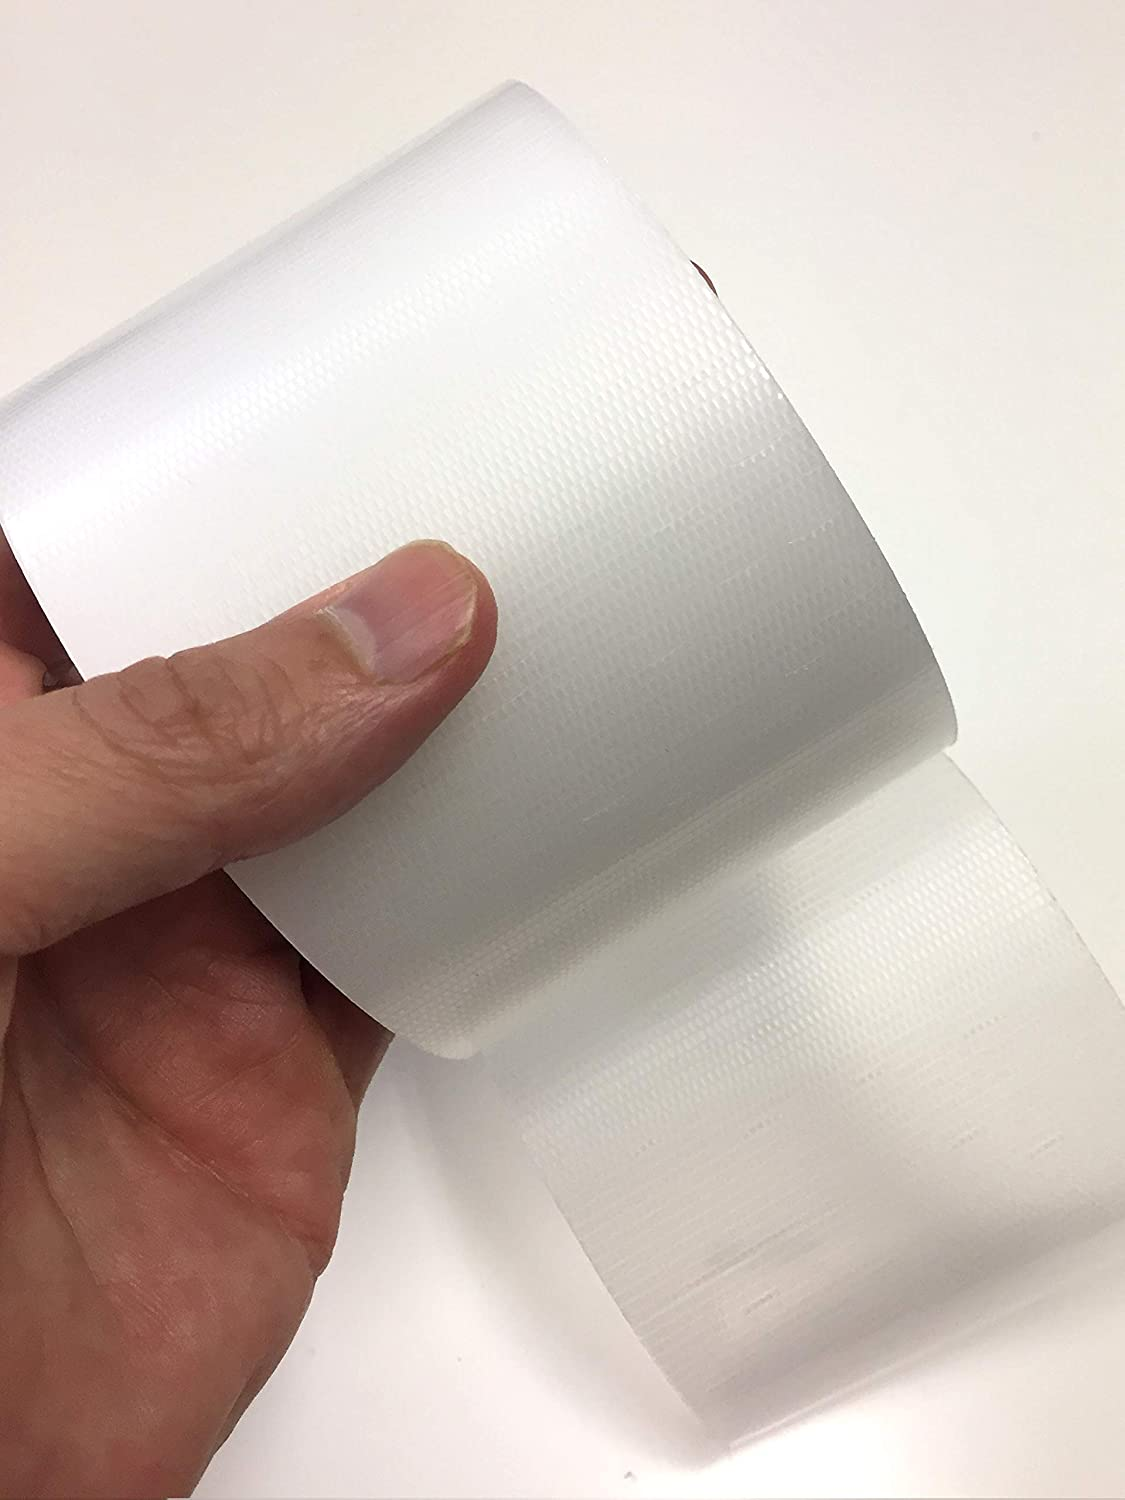 Transparent Duct Tape, Ultra High Performance Weather Resistant Tape for Discreet Repairs and Mounting | Residential, Commercial and Industrial Uses | by Gaffer Power (3 Inch x 20 Yards)